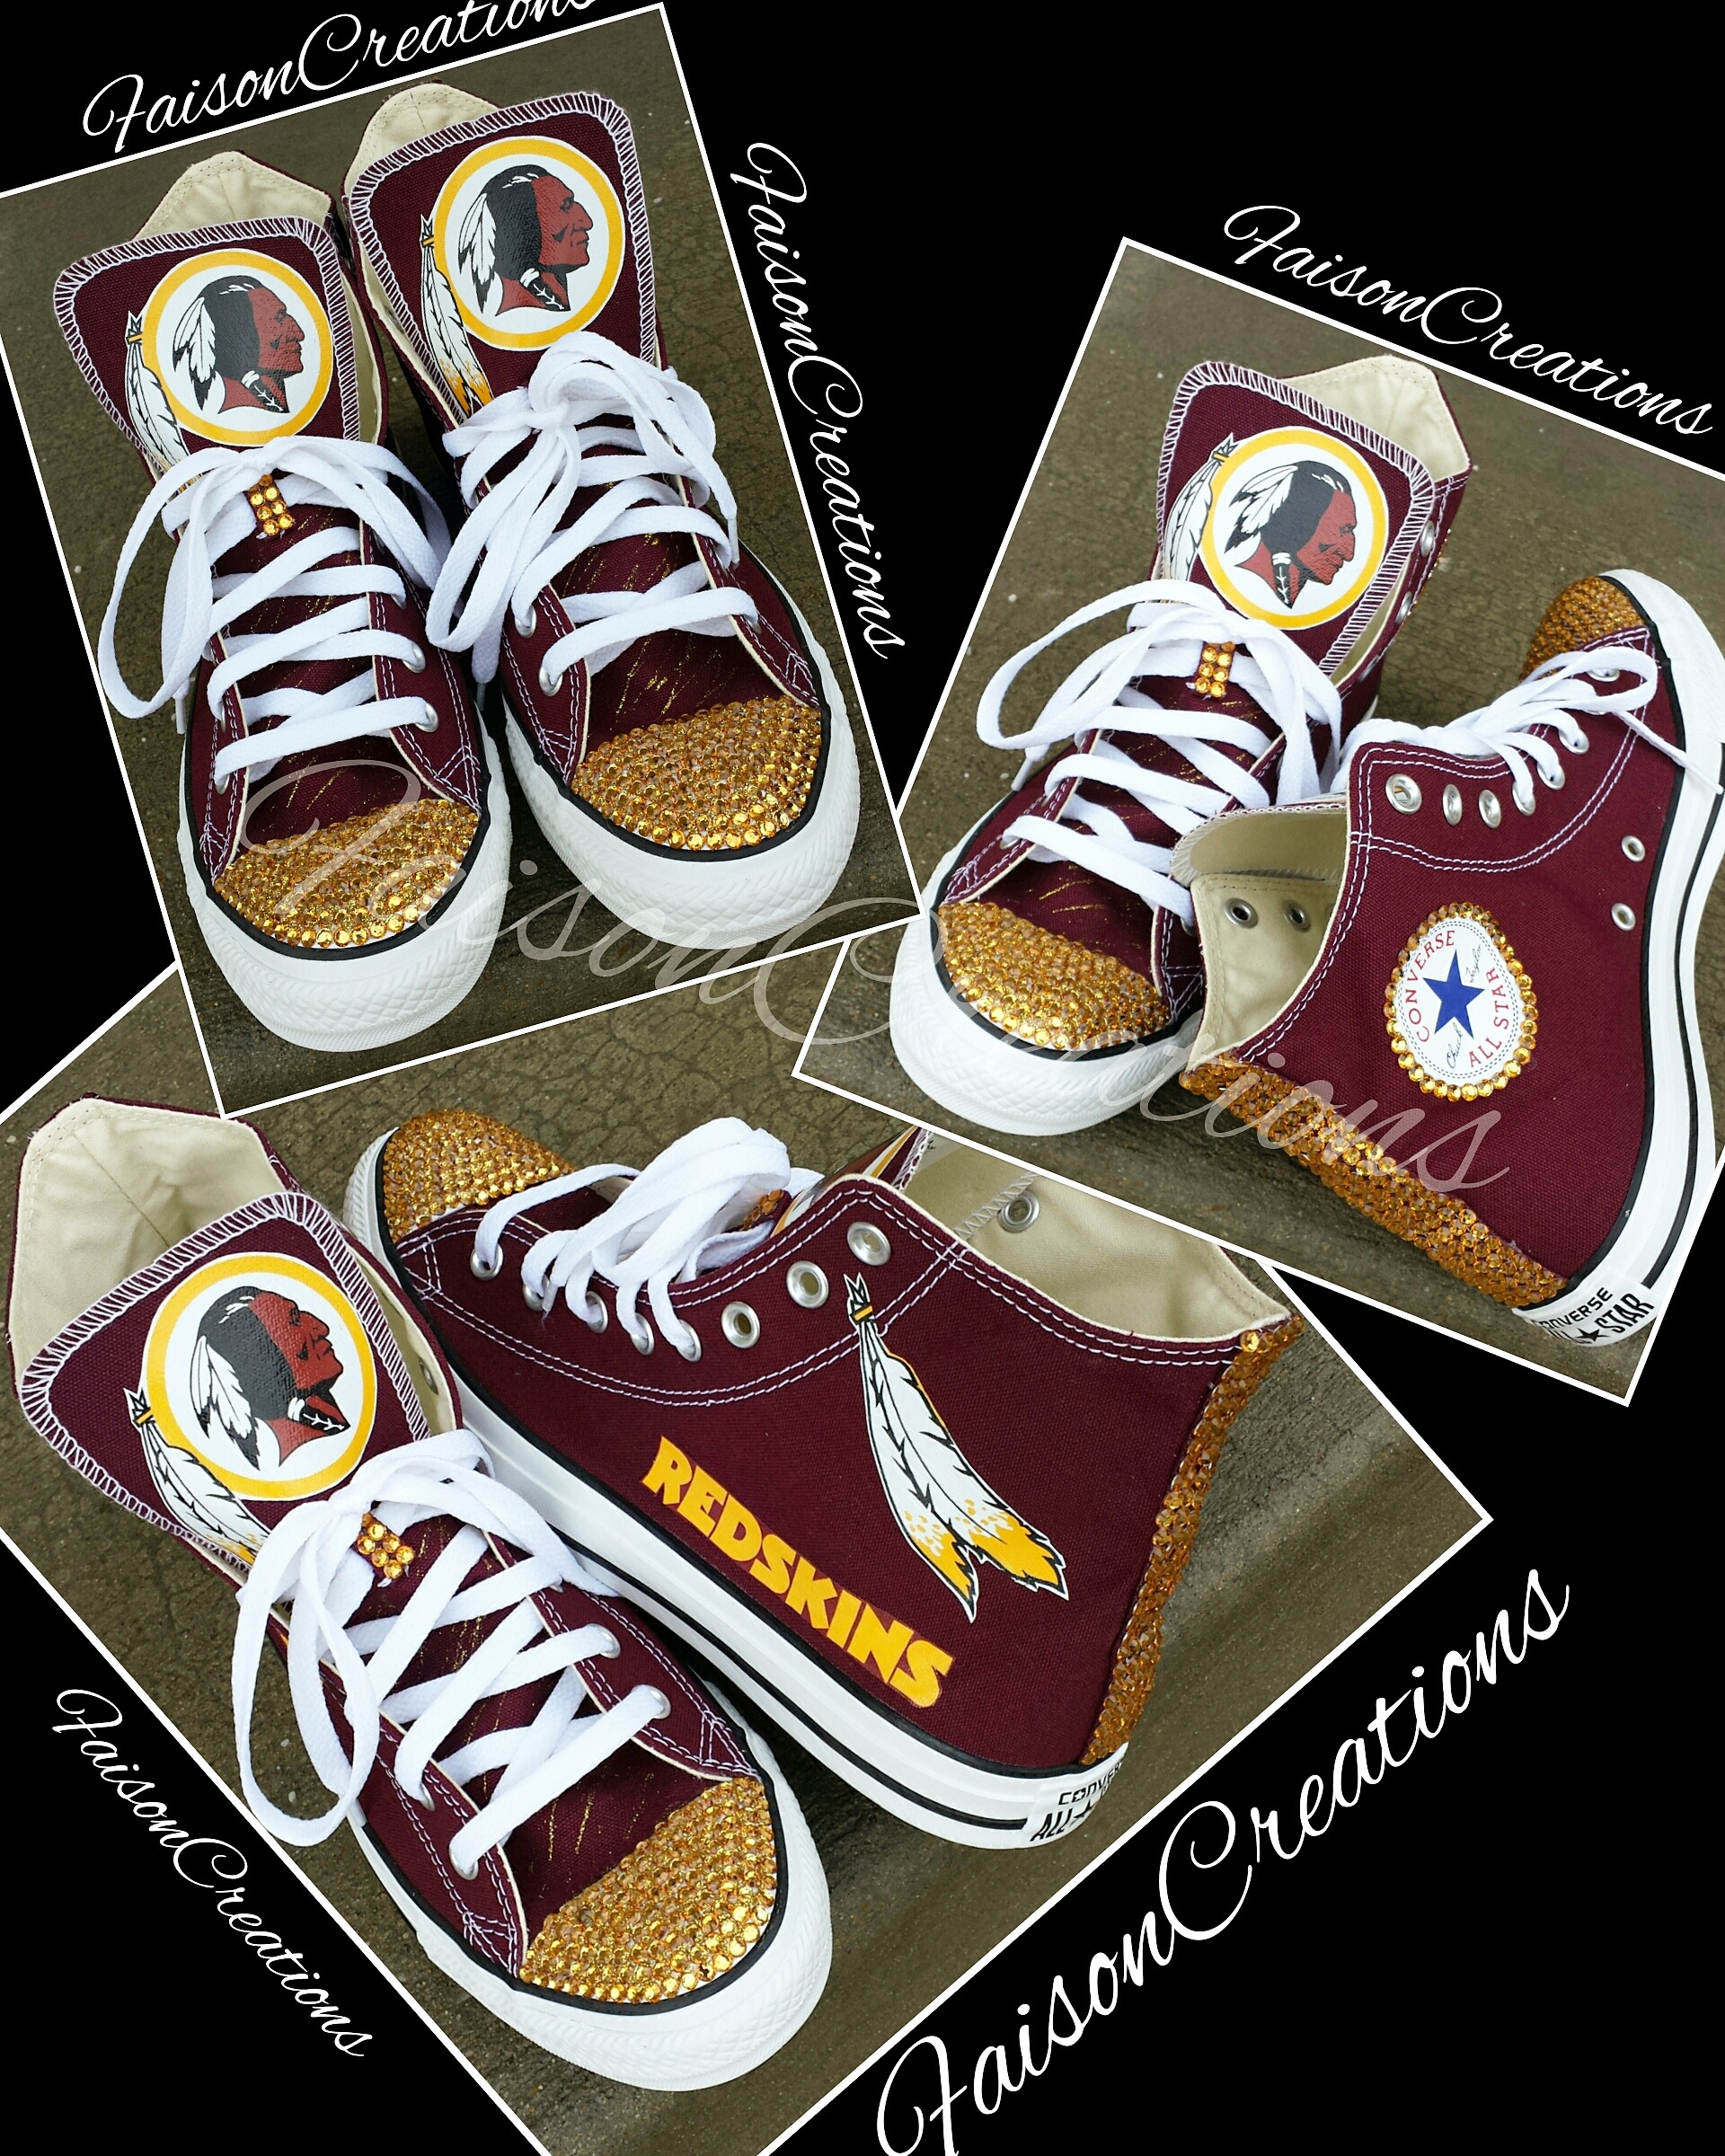 0ccbf477 Adult Custom Redskins Converse Size 4-9 from FaisonCreations